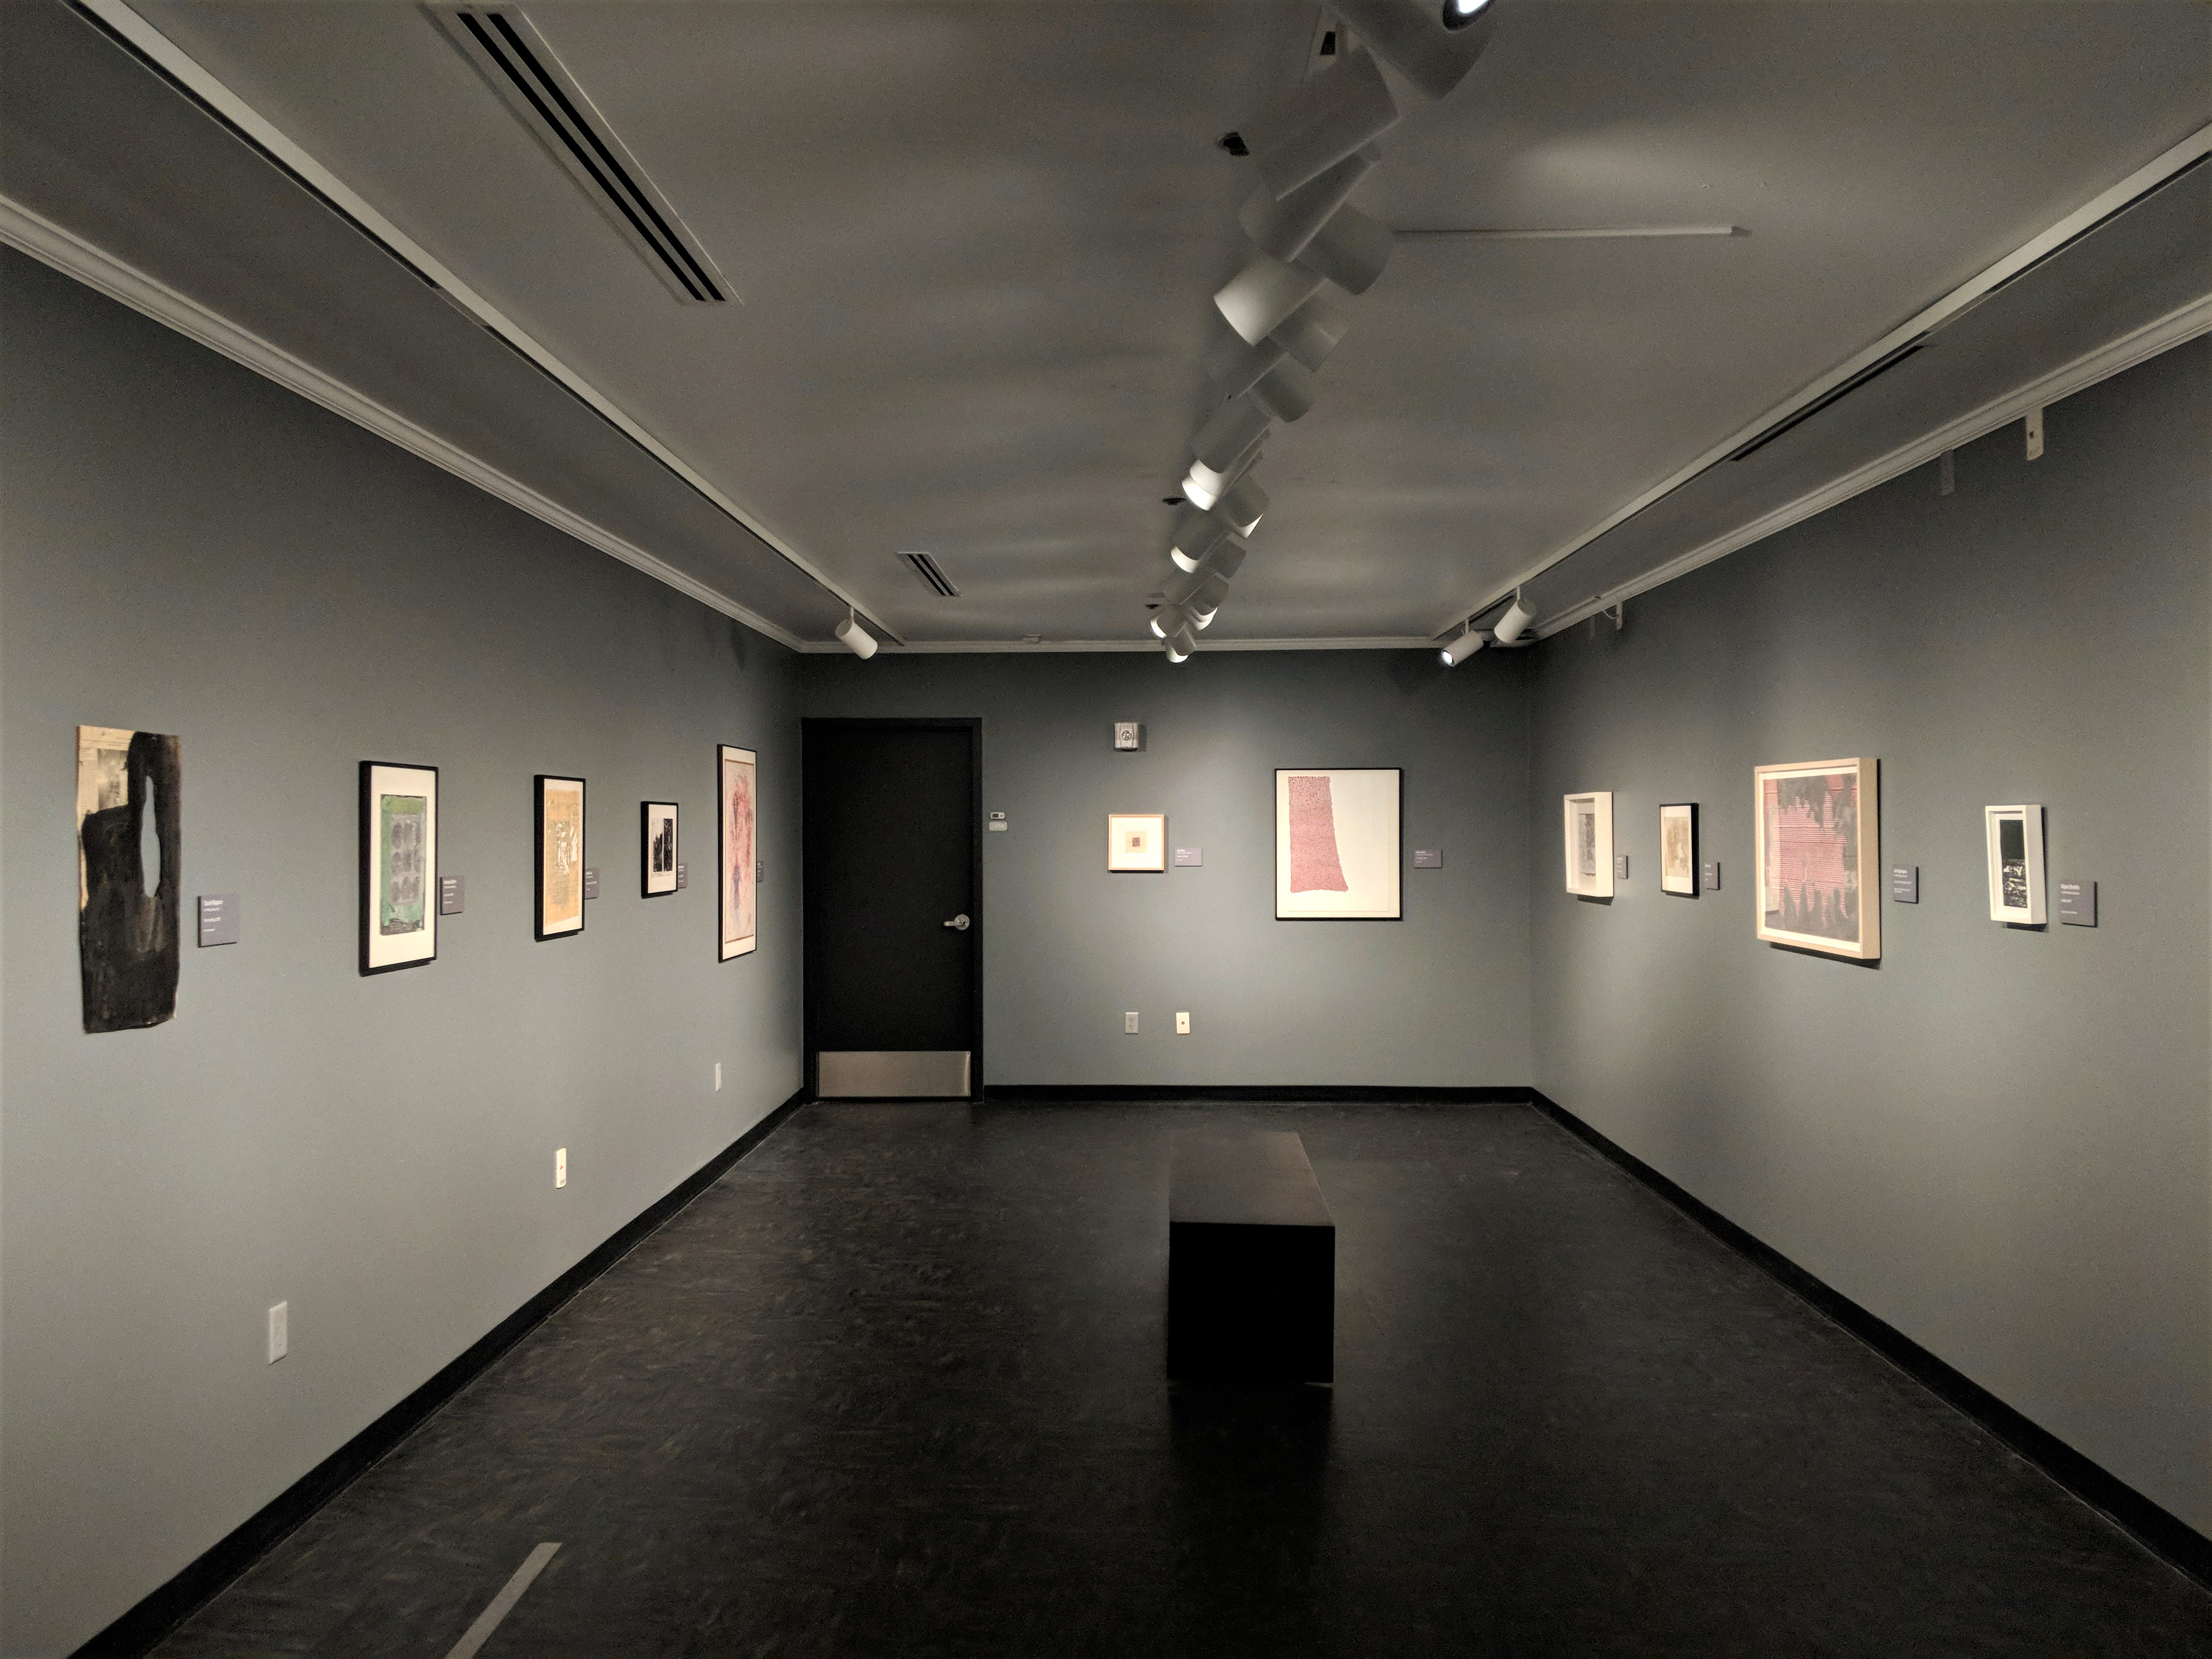 Installation Photos from Spatial Flux: Contemporary Drawings from the Joann Gonzalez Hickey Collection at the Gregory Allicar Museum of Art at Colorado State University